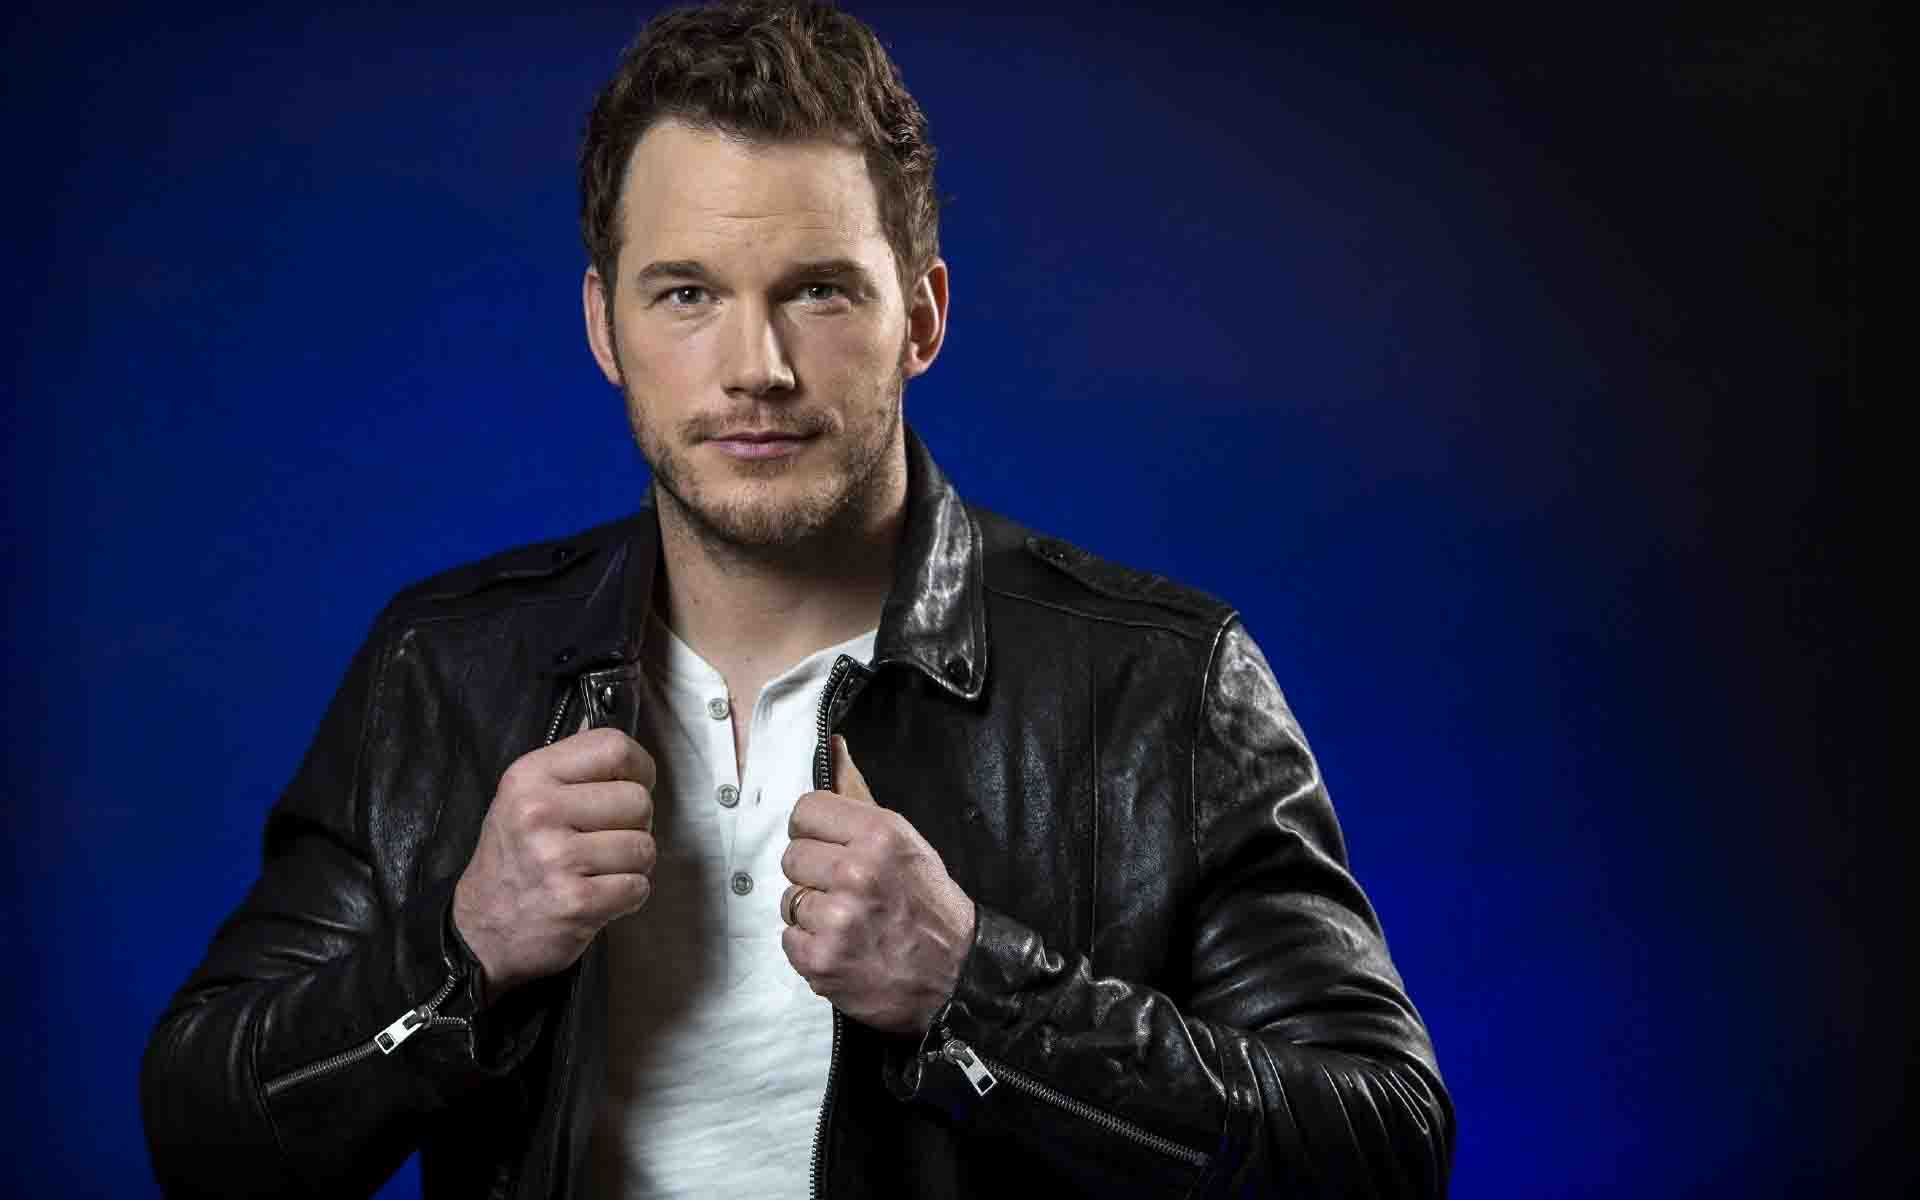 Chris Pratt HD Wallpapers is the CELEBRITY category wallpaper you